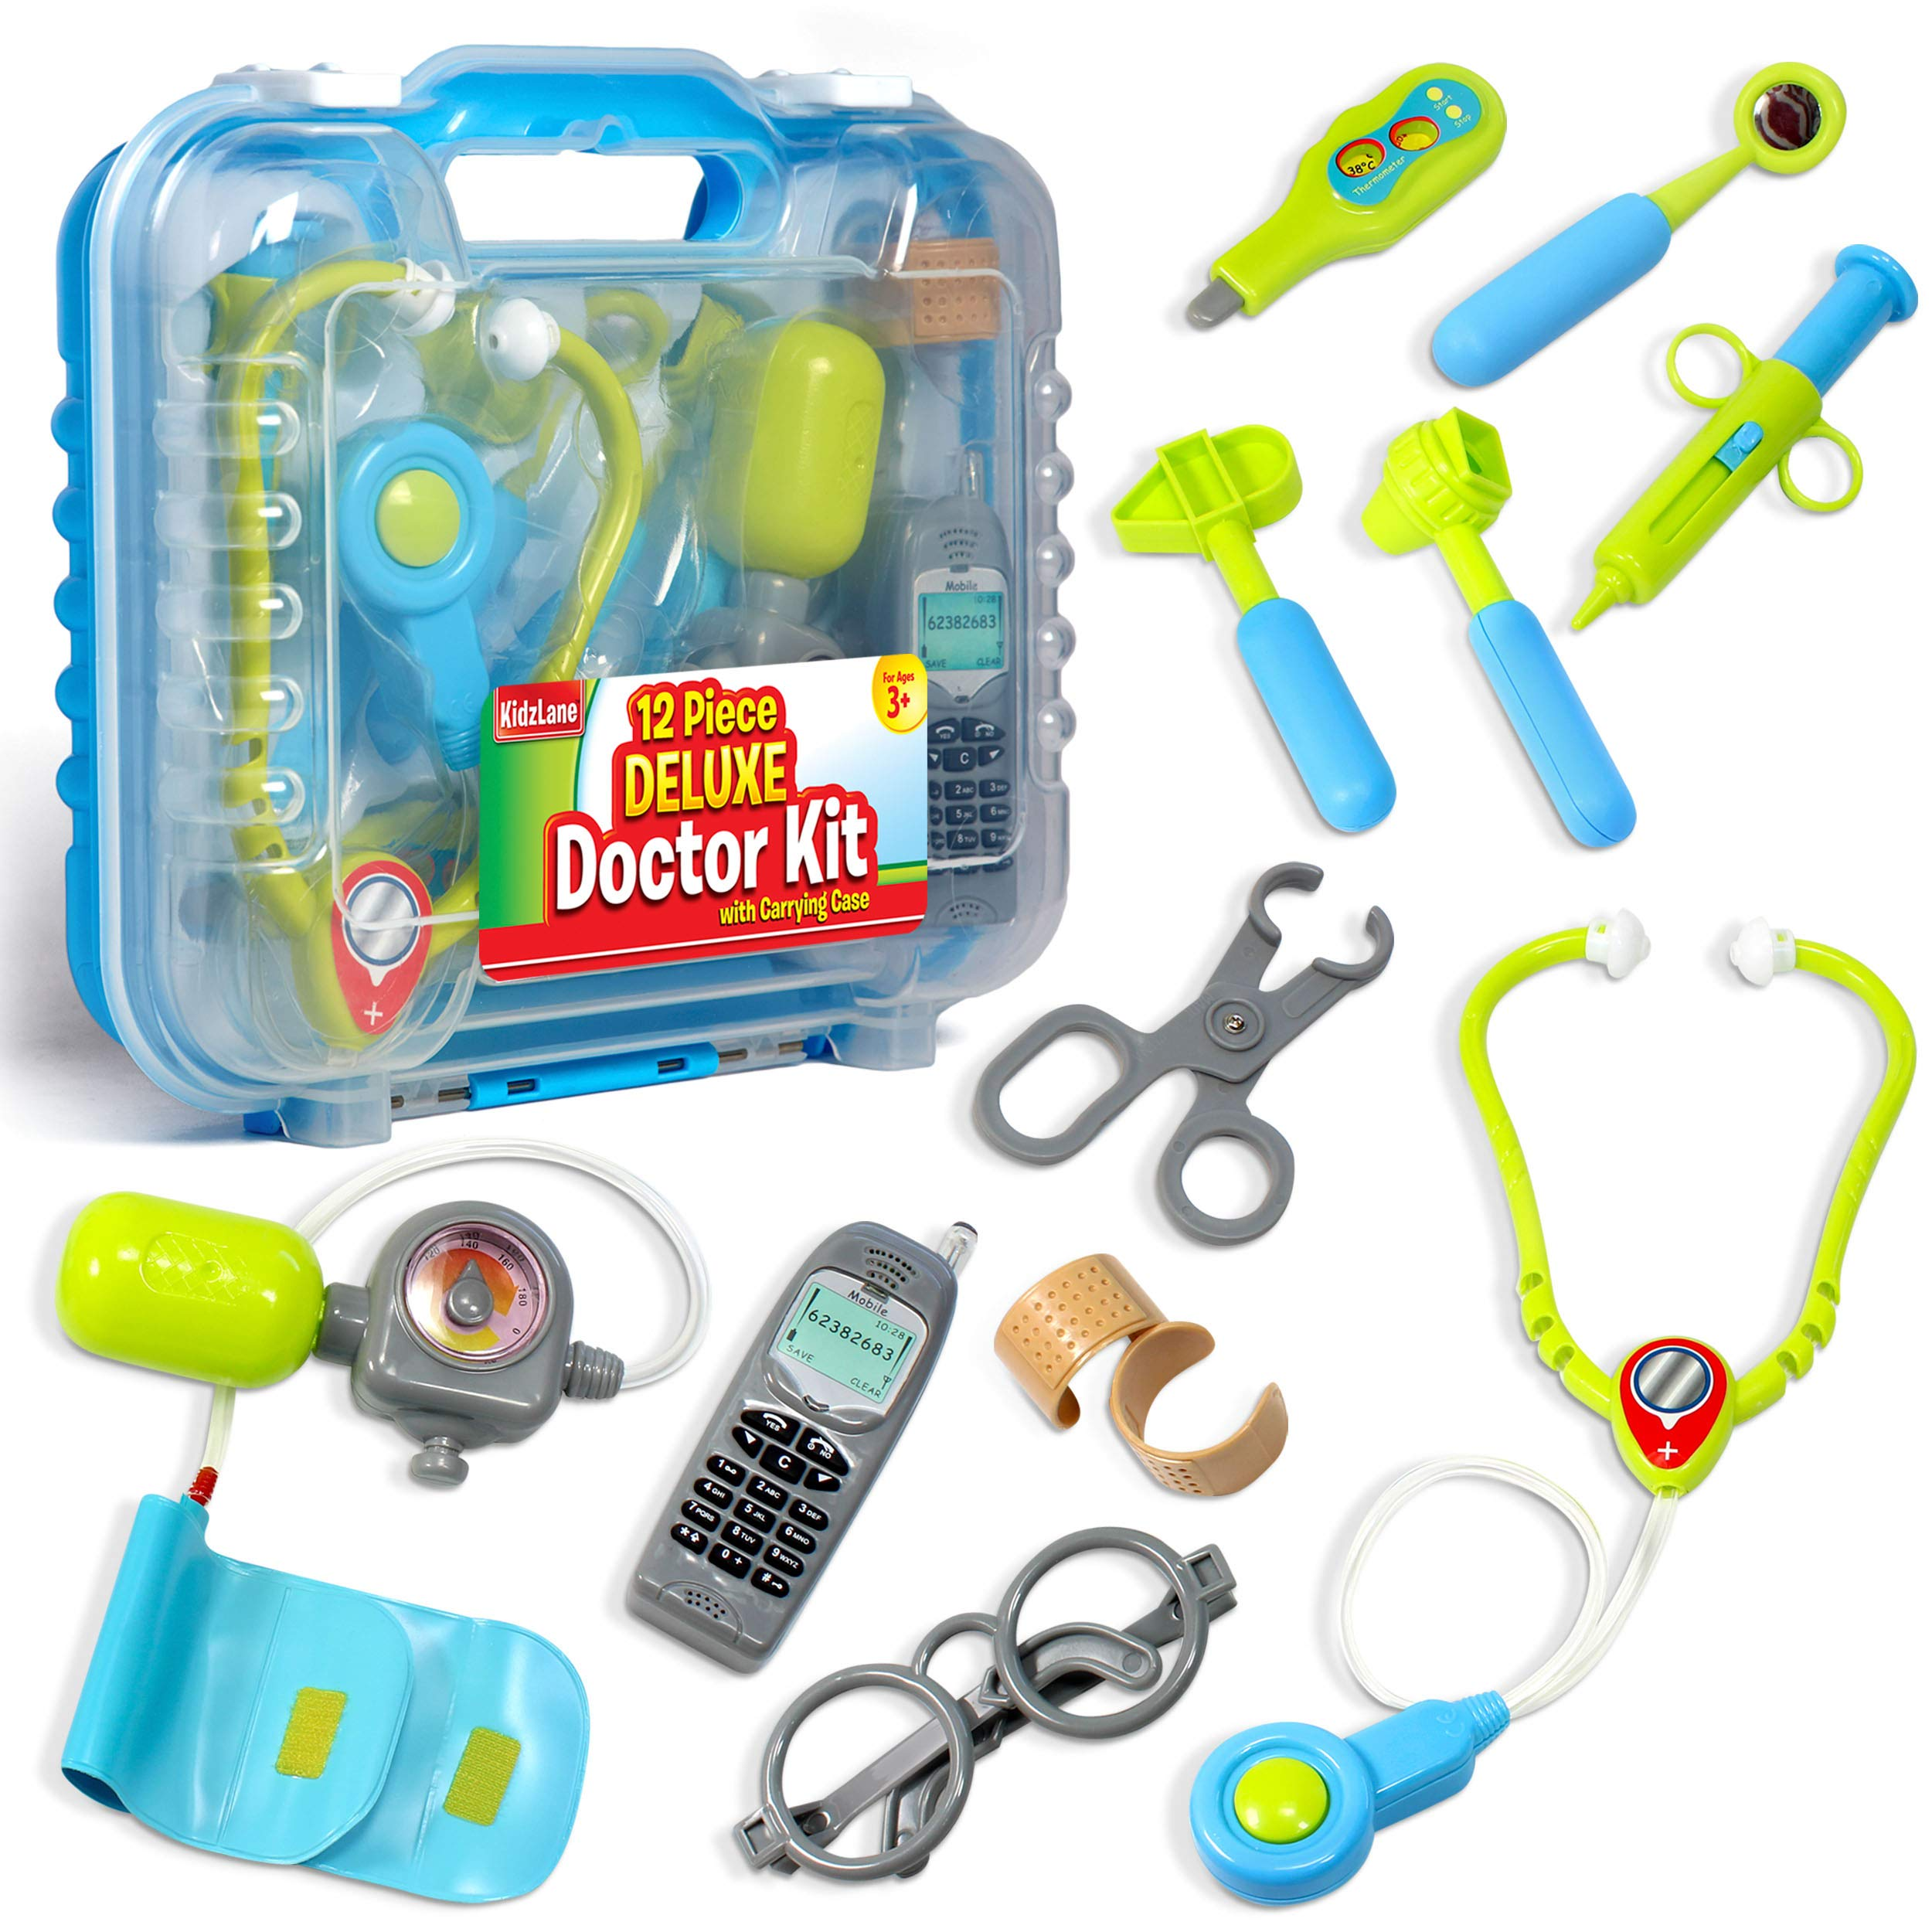 Durable Electronic Stethoscope Medical Equipment